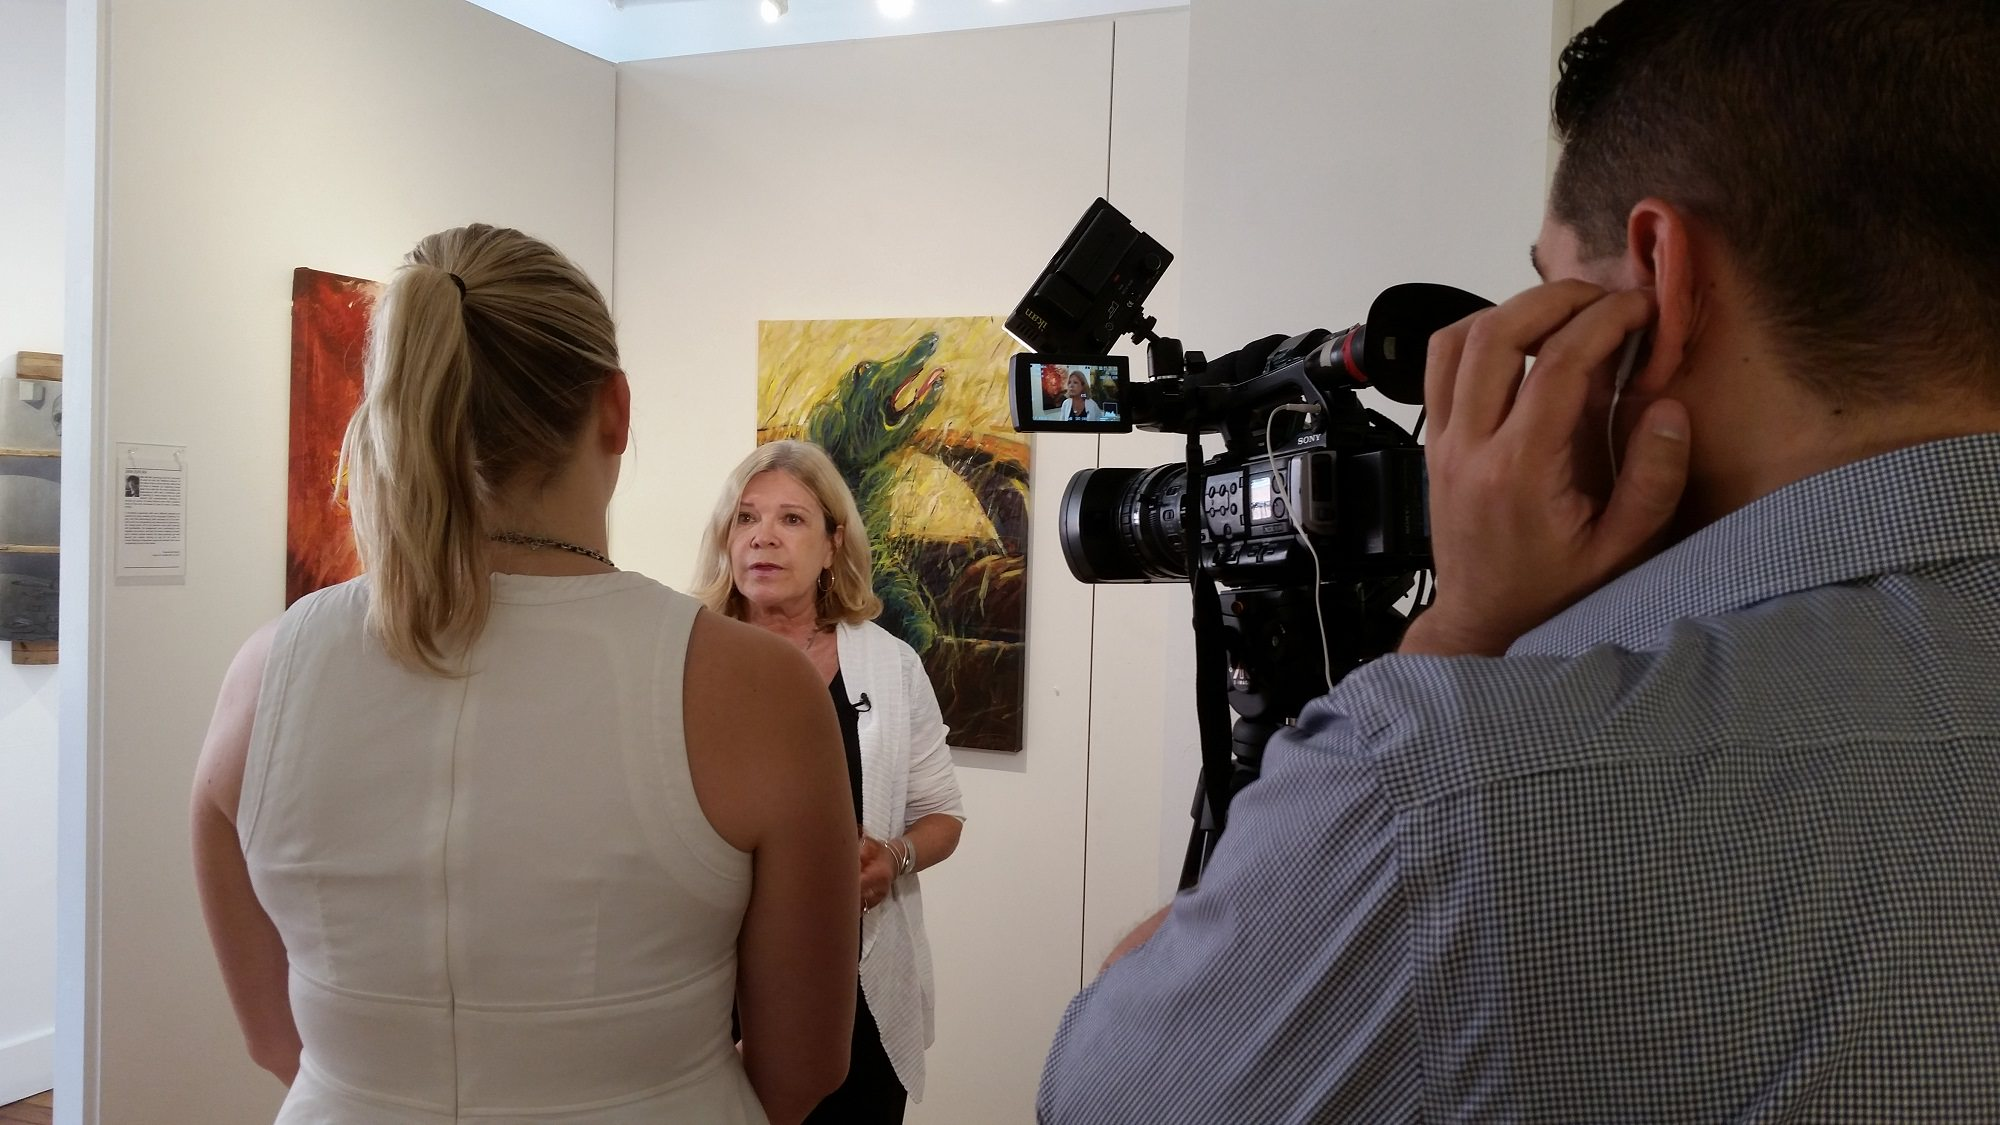 Gallery Director, Angela Di Bello, is interviewed by Sinovision Journal about Jian Jun An's artwork.